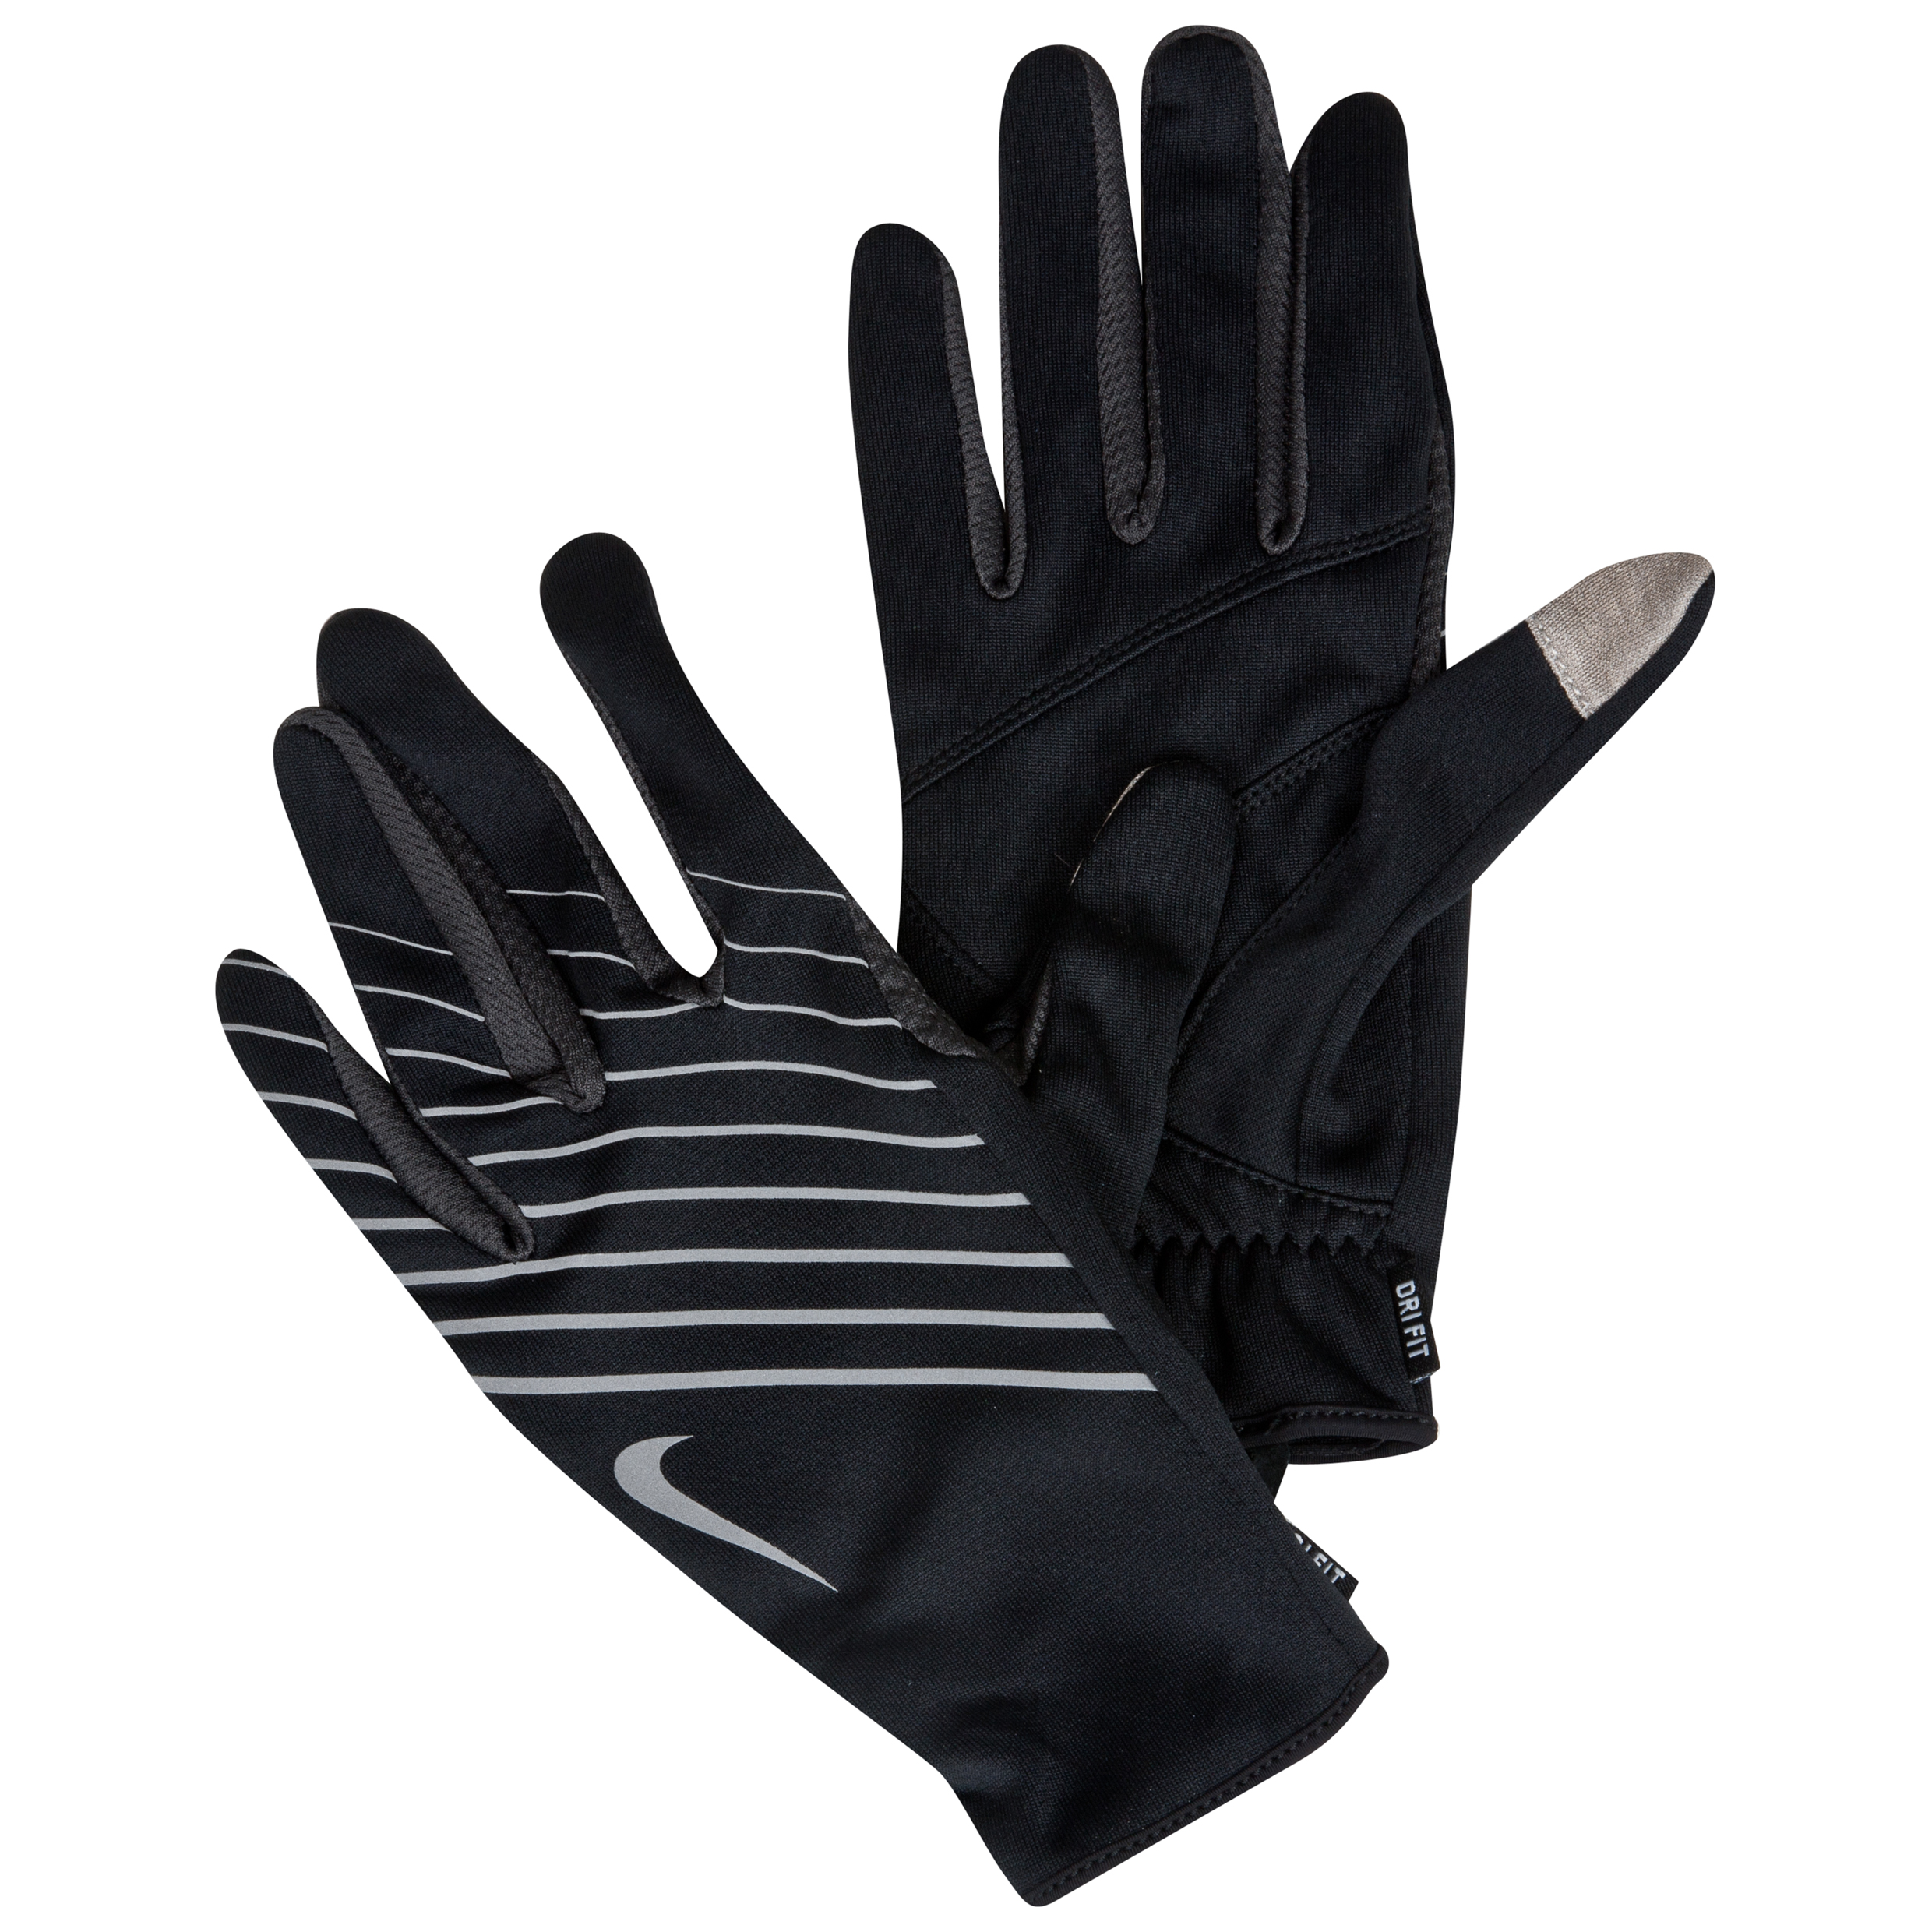 Nike Lightweight Tech Run Gloves - Black/Anthracite - Womens